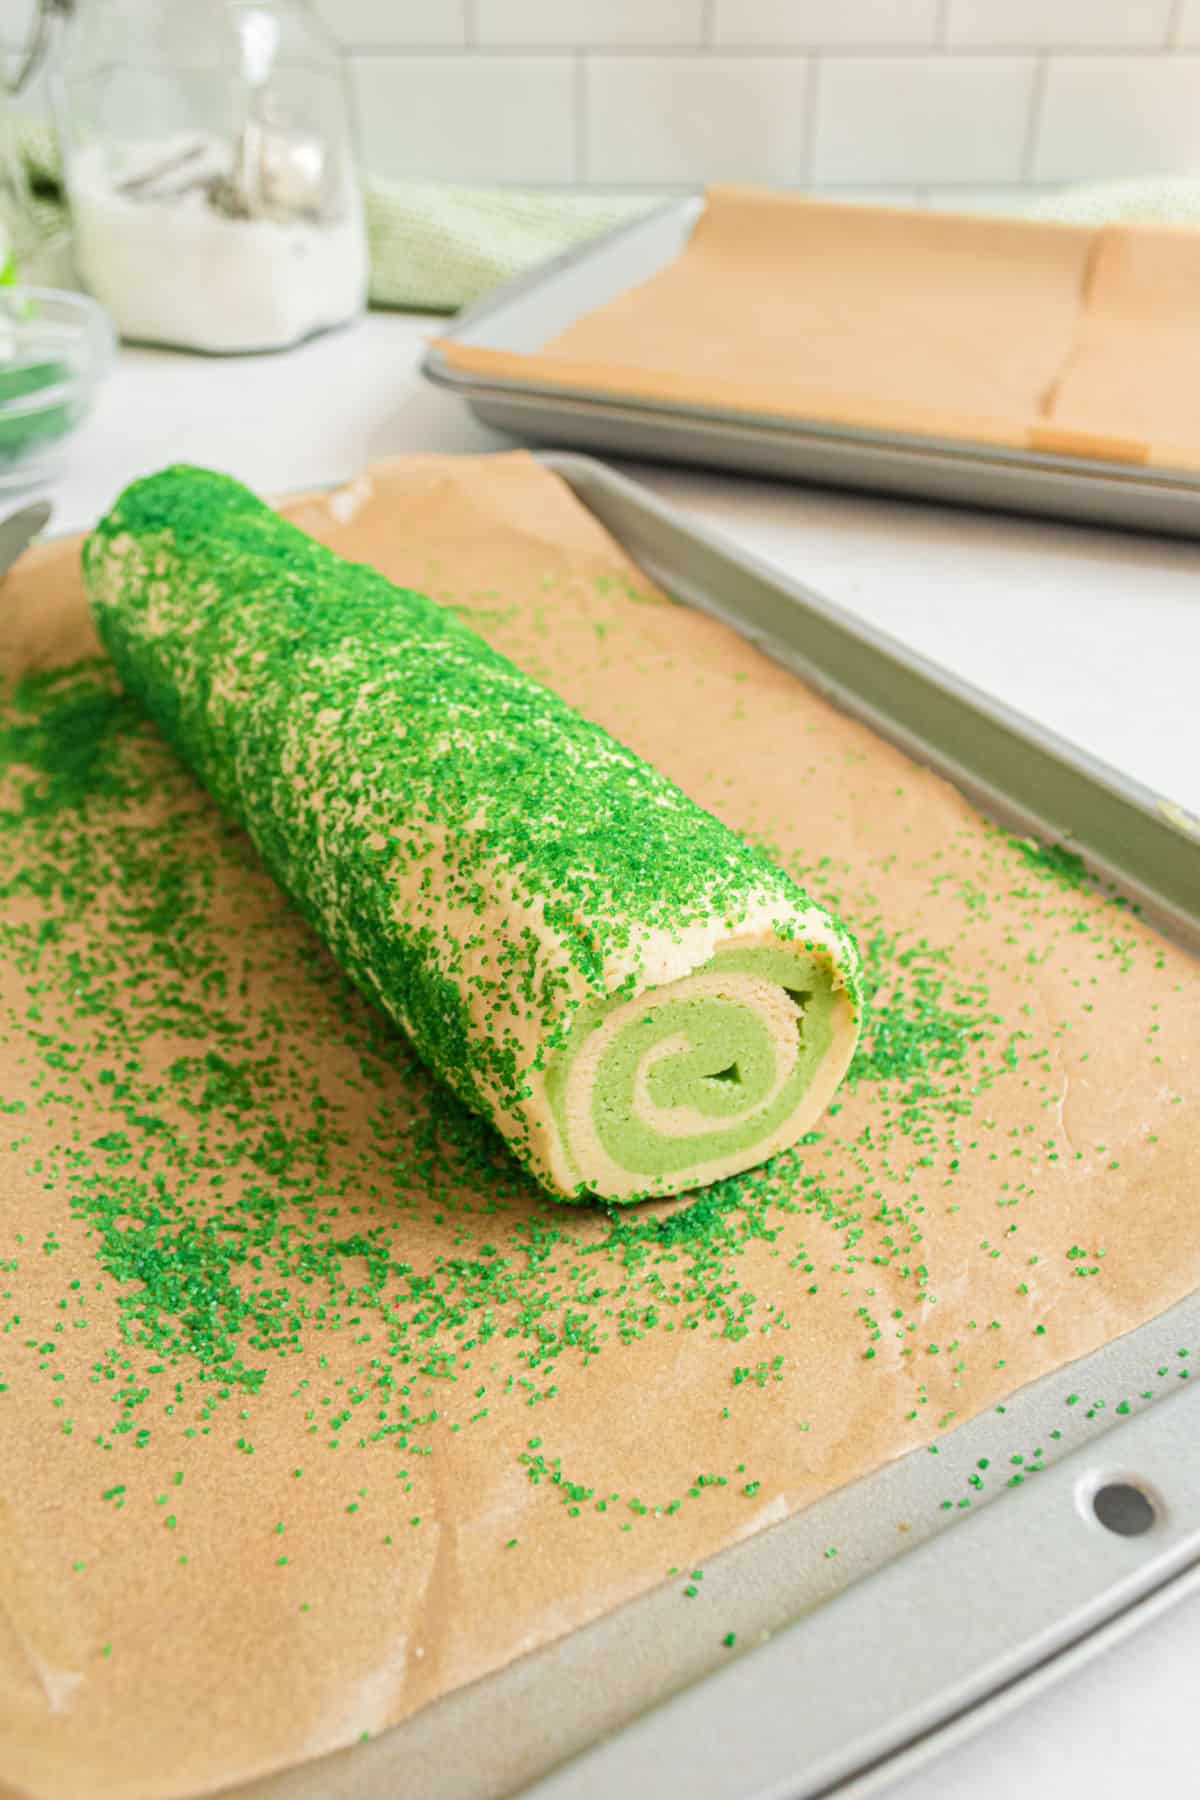 Lime swirled icebox cookies on parchment paper being rolled in sprinkles.